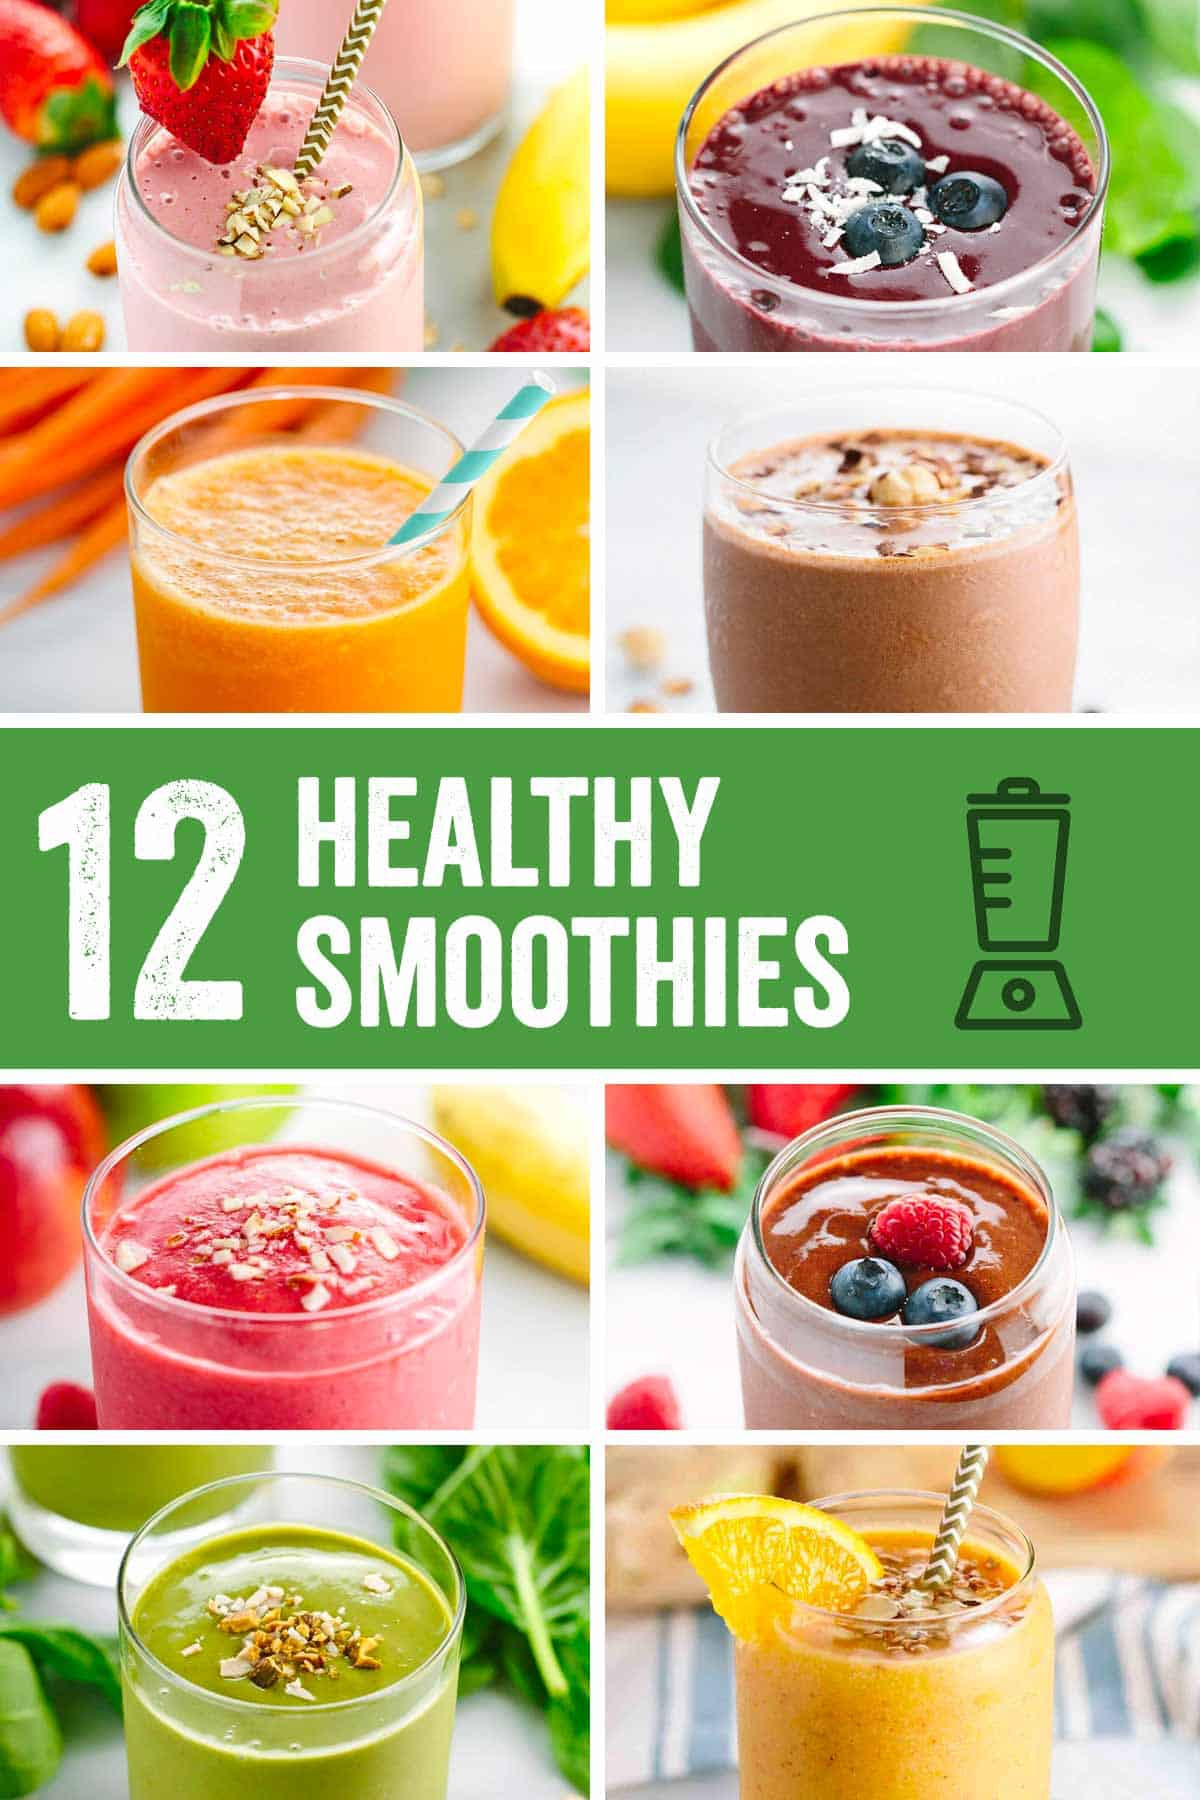 Smoothie Recipes Healthy  Roundup Easy Five Minute Healthy Smoothie Recipes